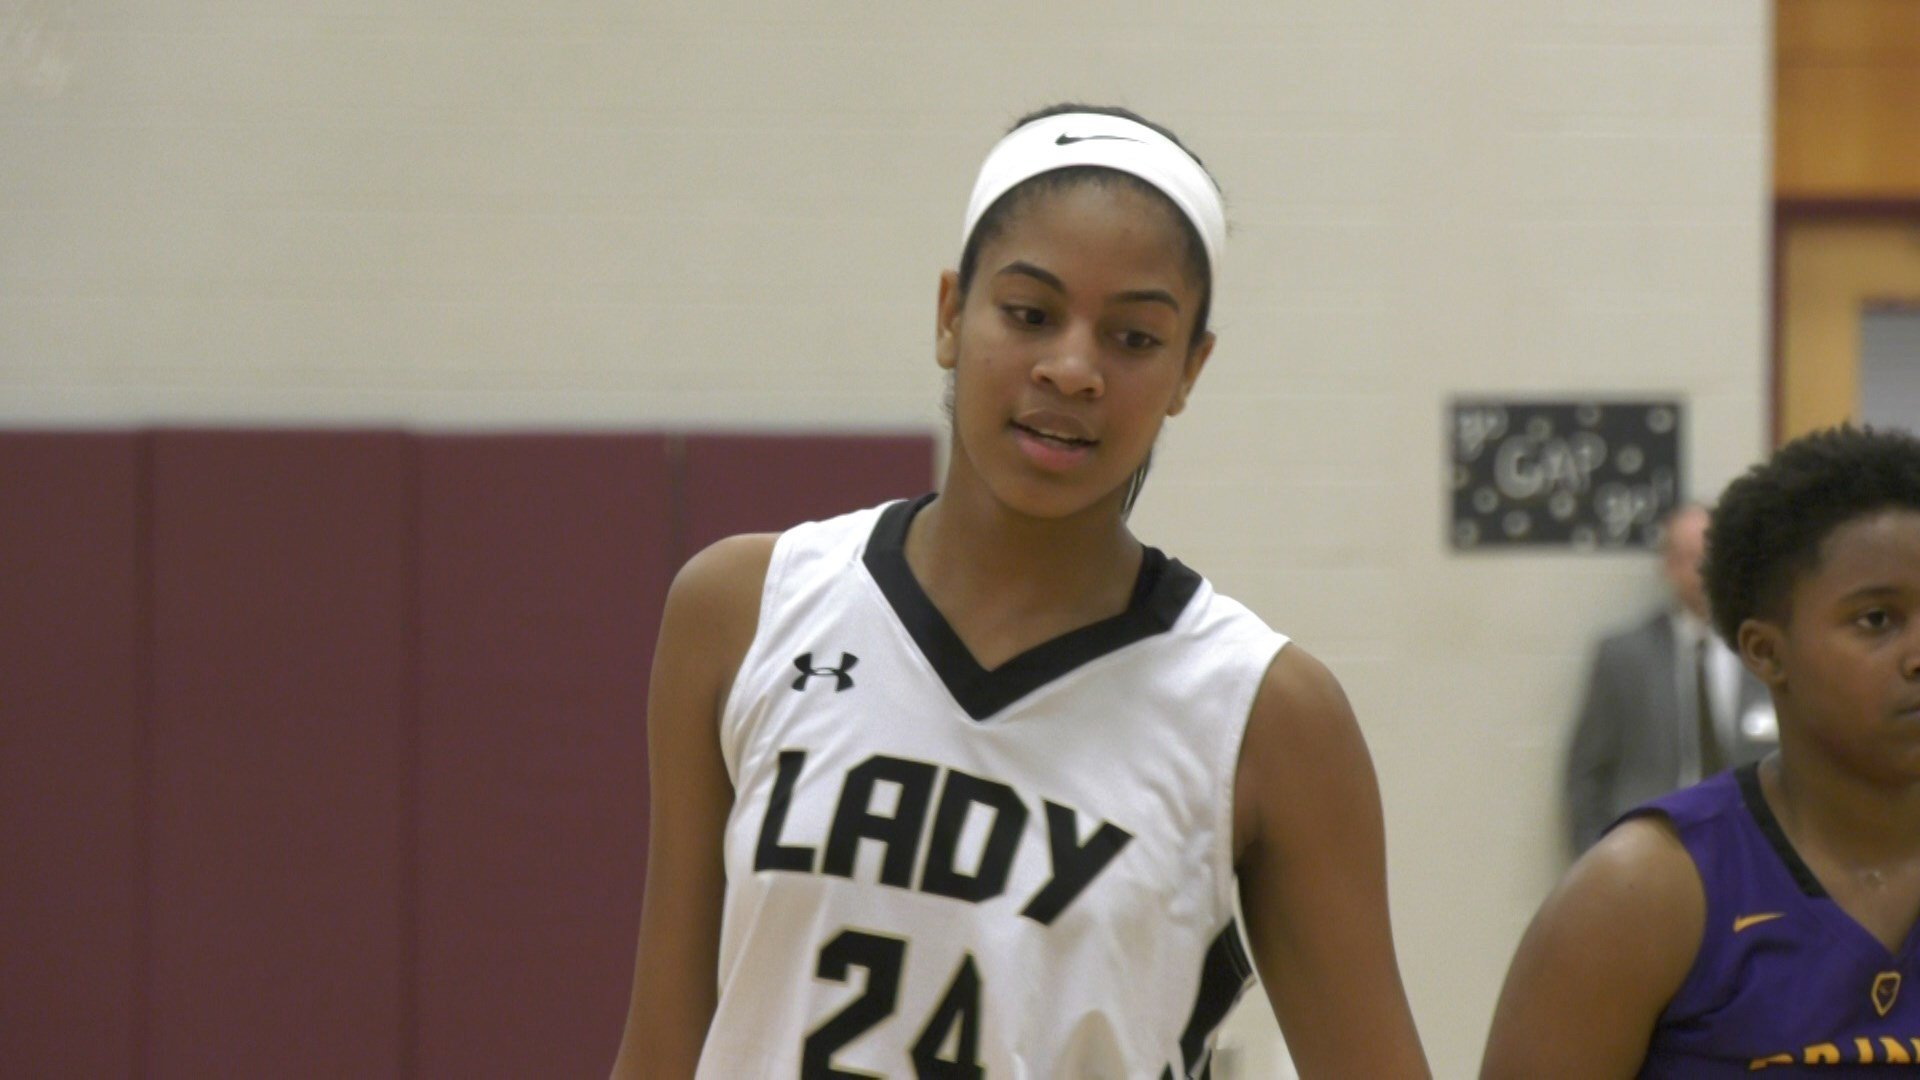 Amaya Lucas led Buffalo Gap with 20 points